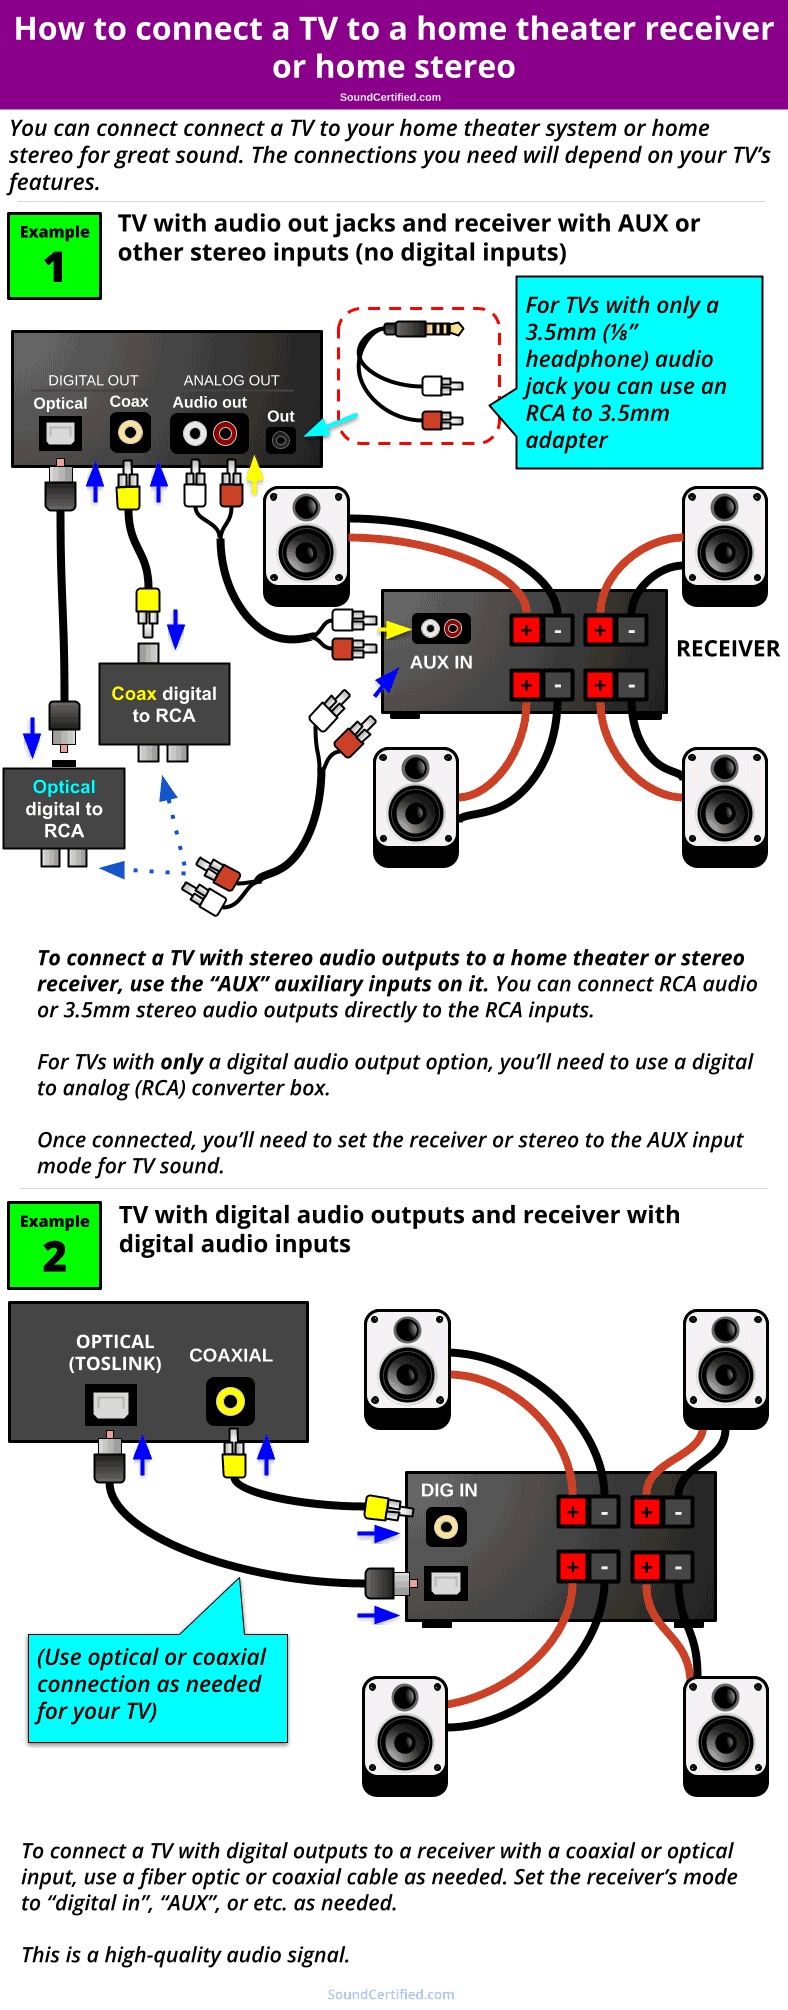 how to connect a TV to a home theater receiver diagram